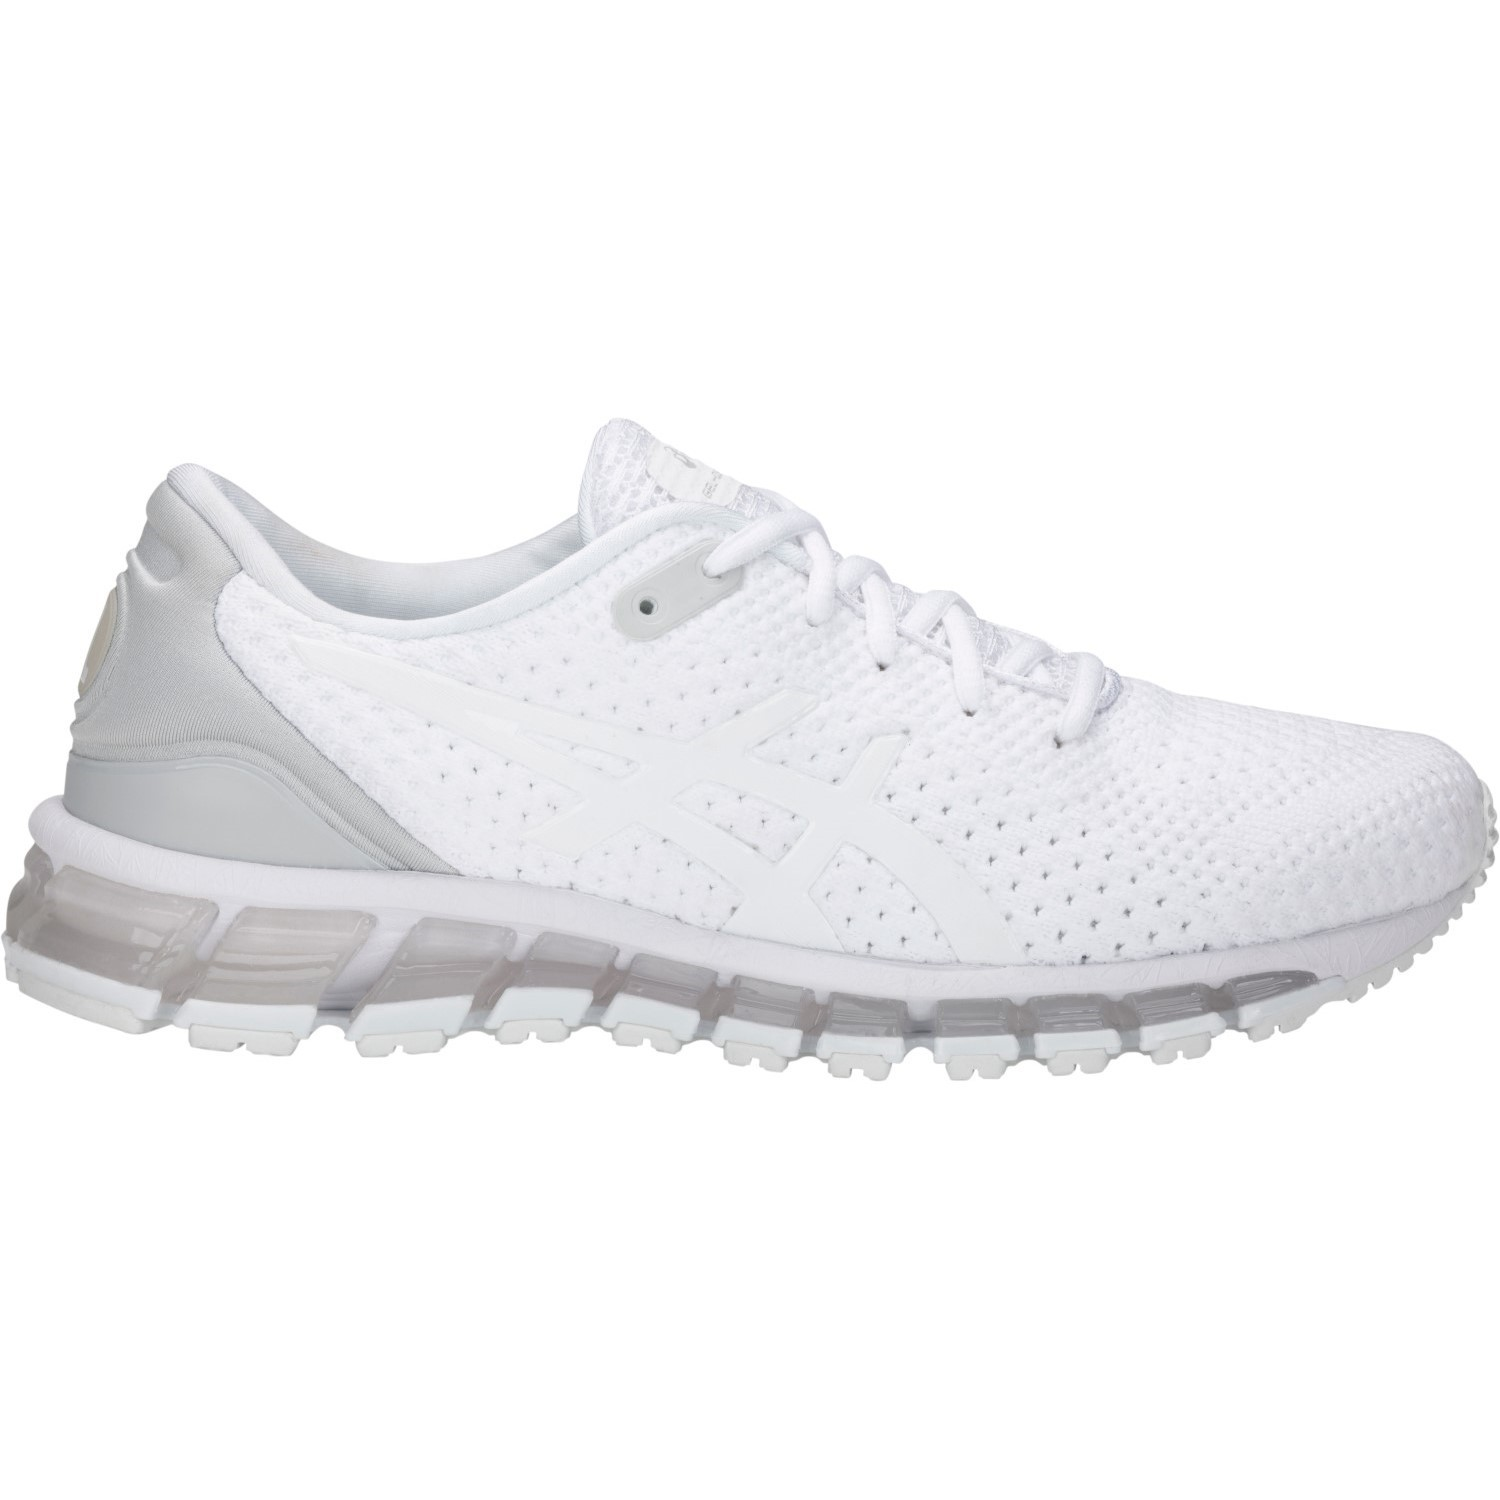 buy popular 91861 01a33 germany asics gel quantum 360 knit 2 womens training shoes 710a0 091a4